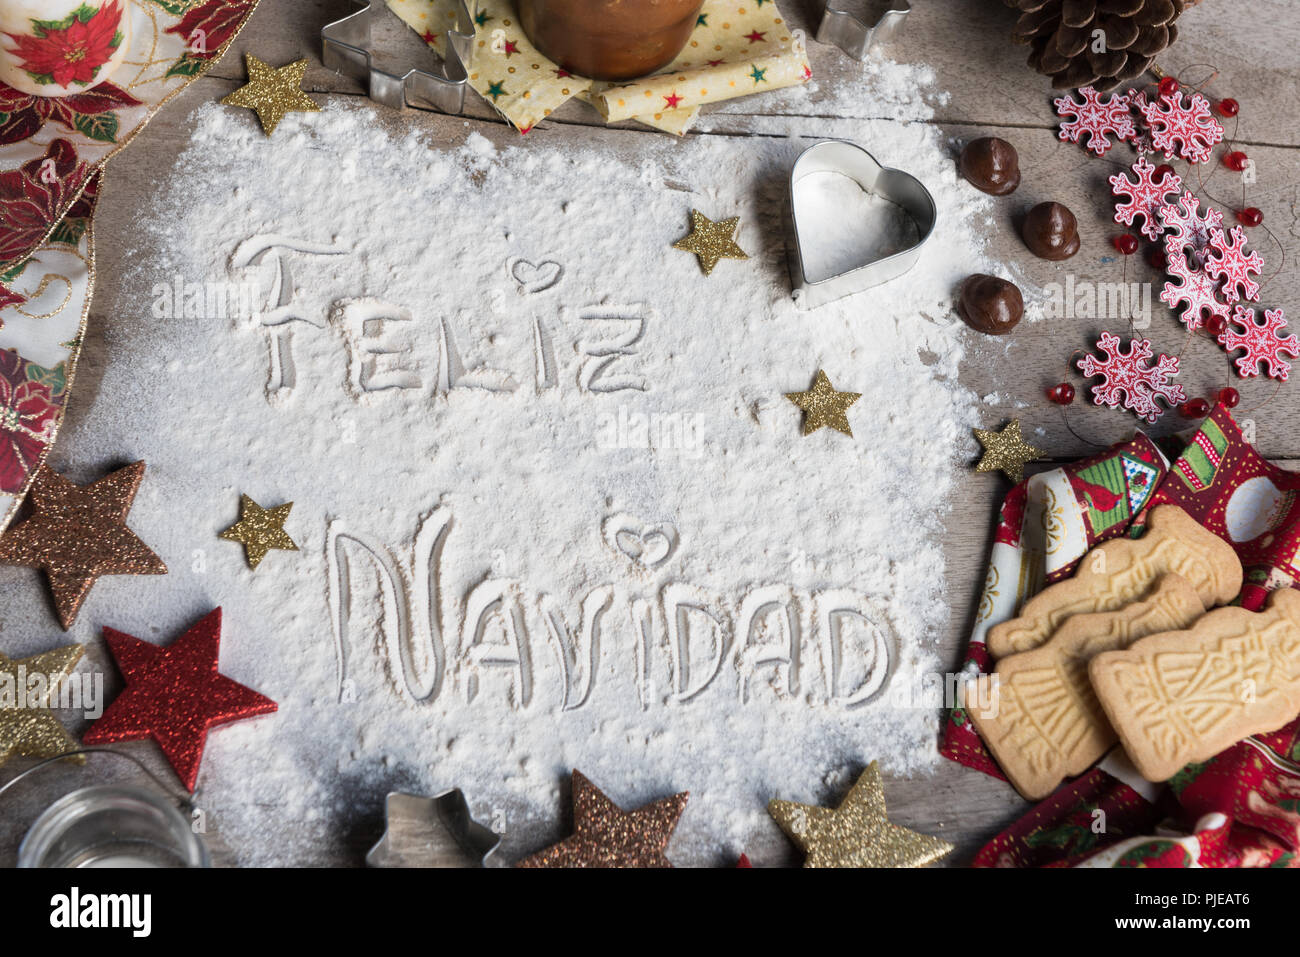 feliz navidad spanish text made with flour surrounded by christmas decorations seasonal concept